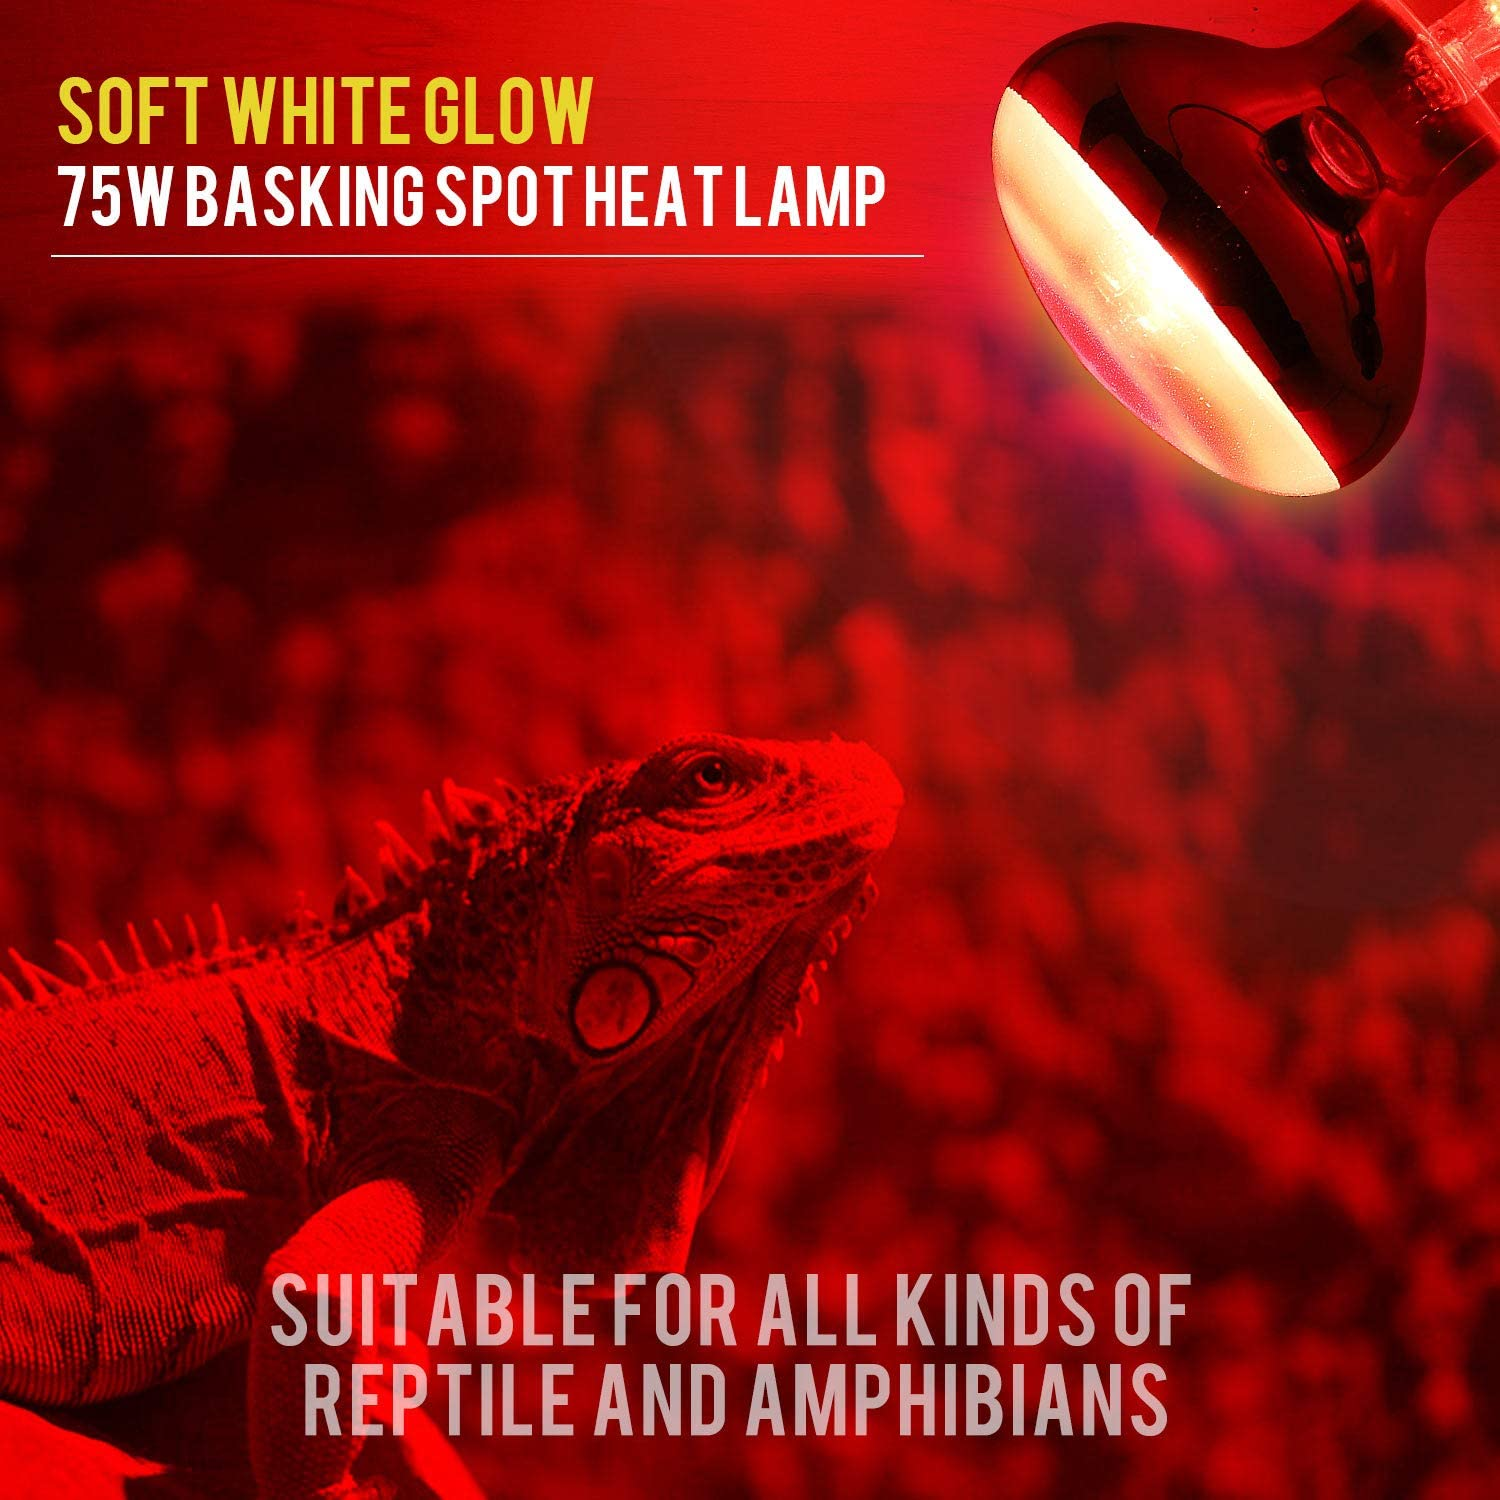 Lizard Tortoise Spider Snake Chameleon 2 Pack FIVEAGE 75W Gilded Red Pet Light Heating Infrared Bulb UVA Spot Heat Lamp for Reptile and Amphibian Use